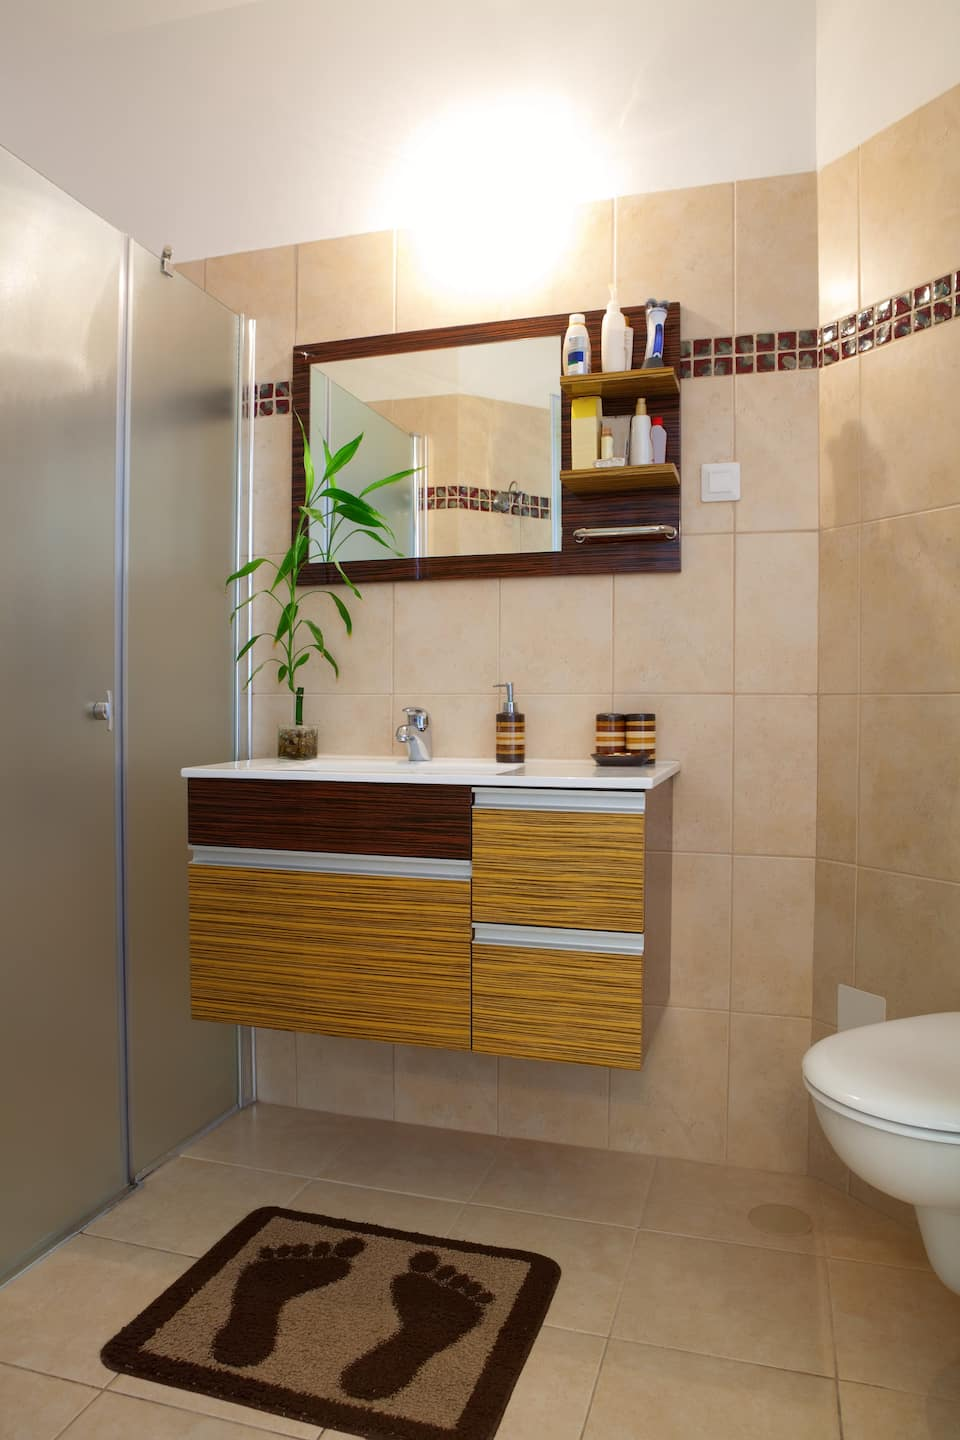 Bathroom Cabinet Design bathroom cabinet to create your own graceful bathroom home design ideas 15 A Modern Bathroom